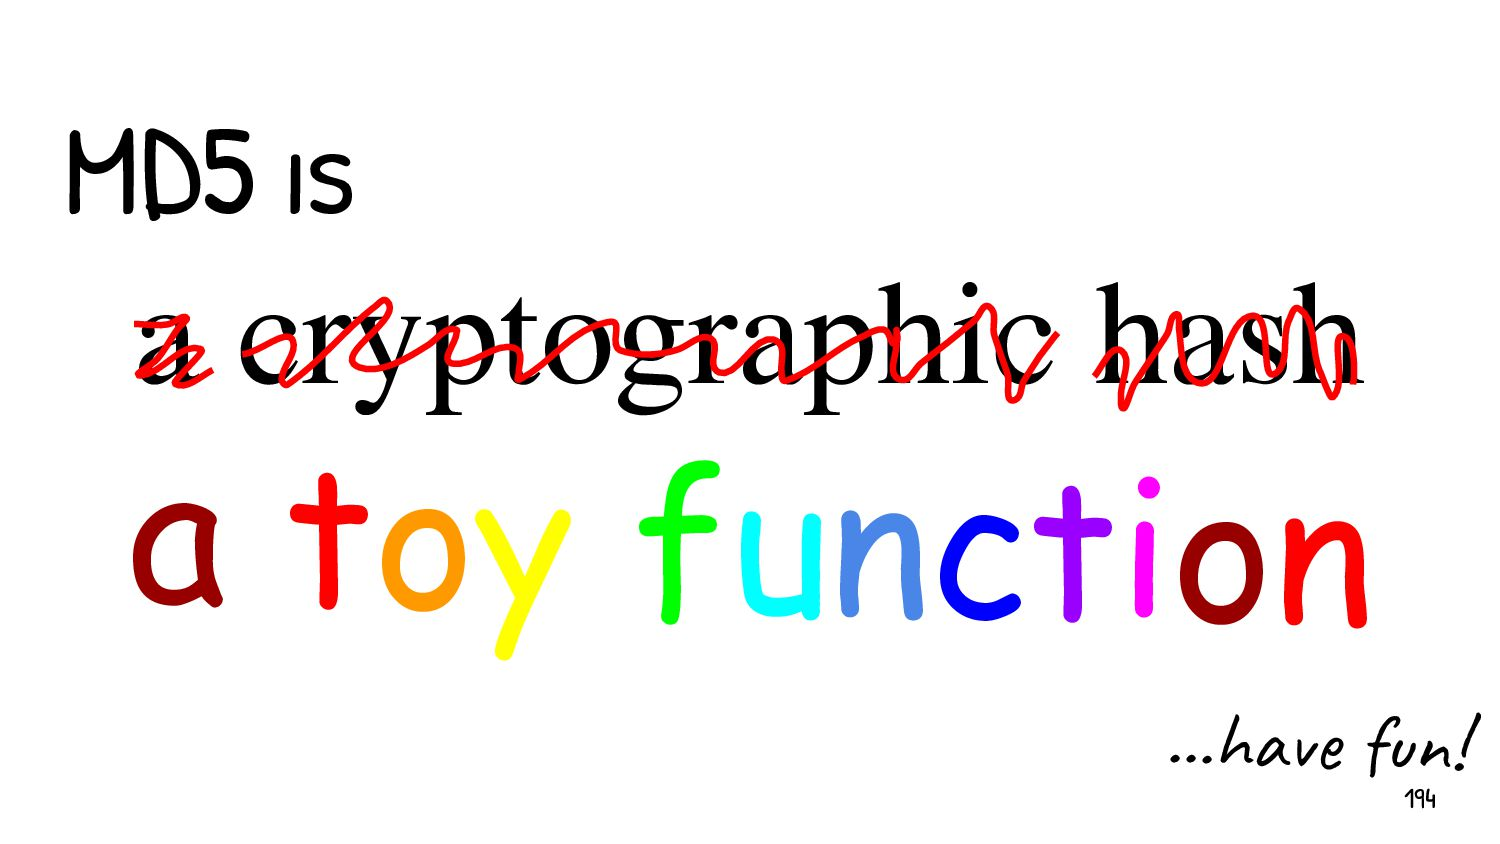 PDF Merge both documents, split /Kids in 2 part...